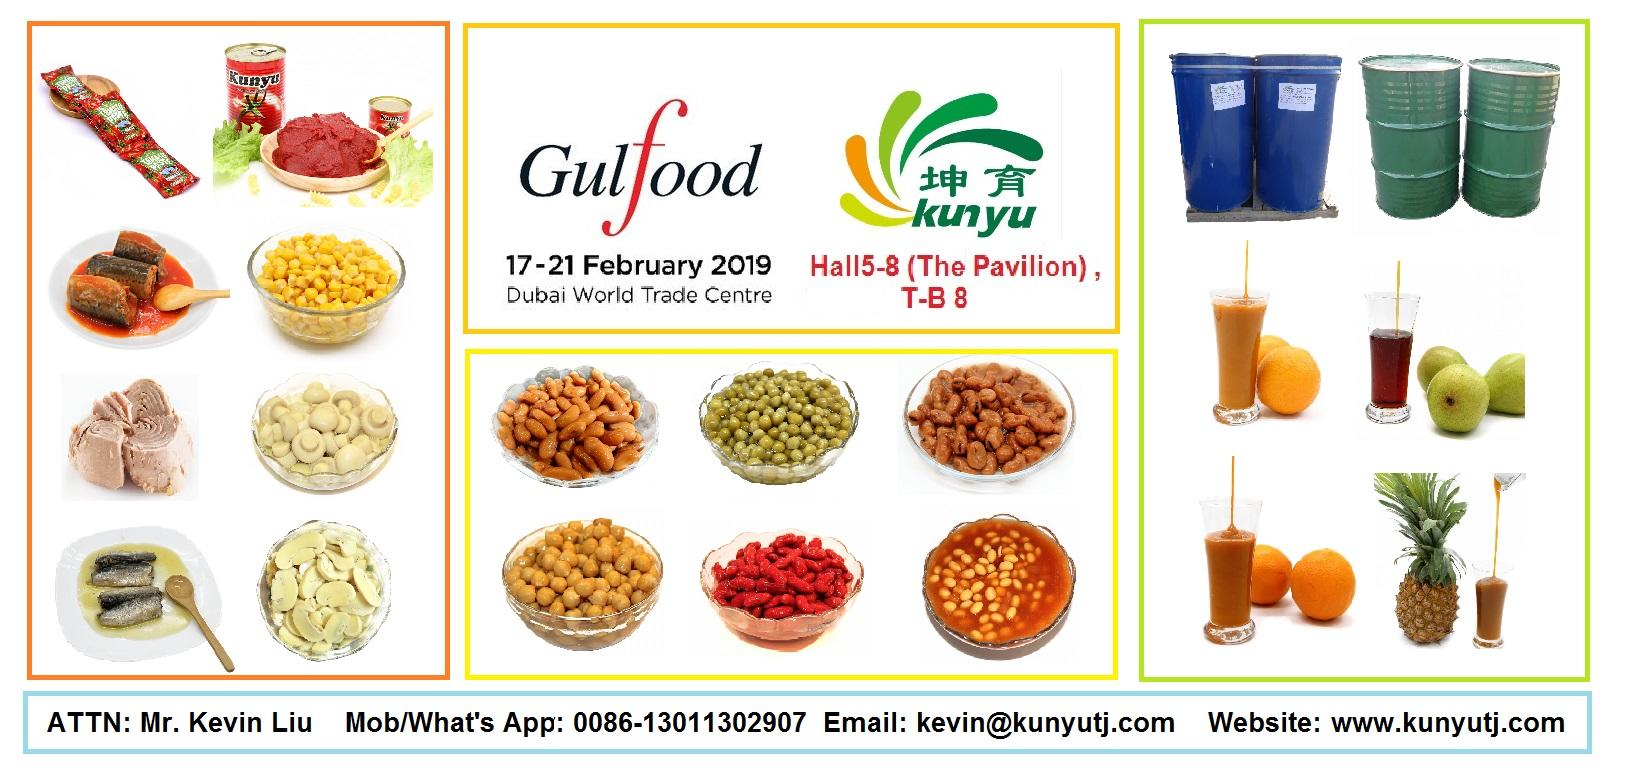 2019 Gulfood Exhibition